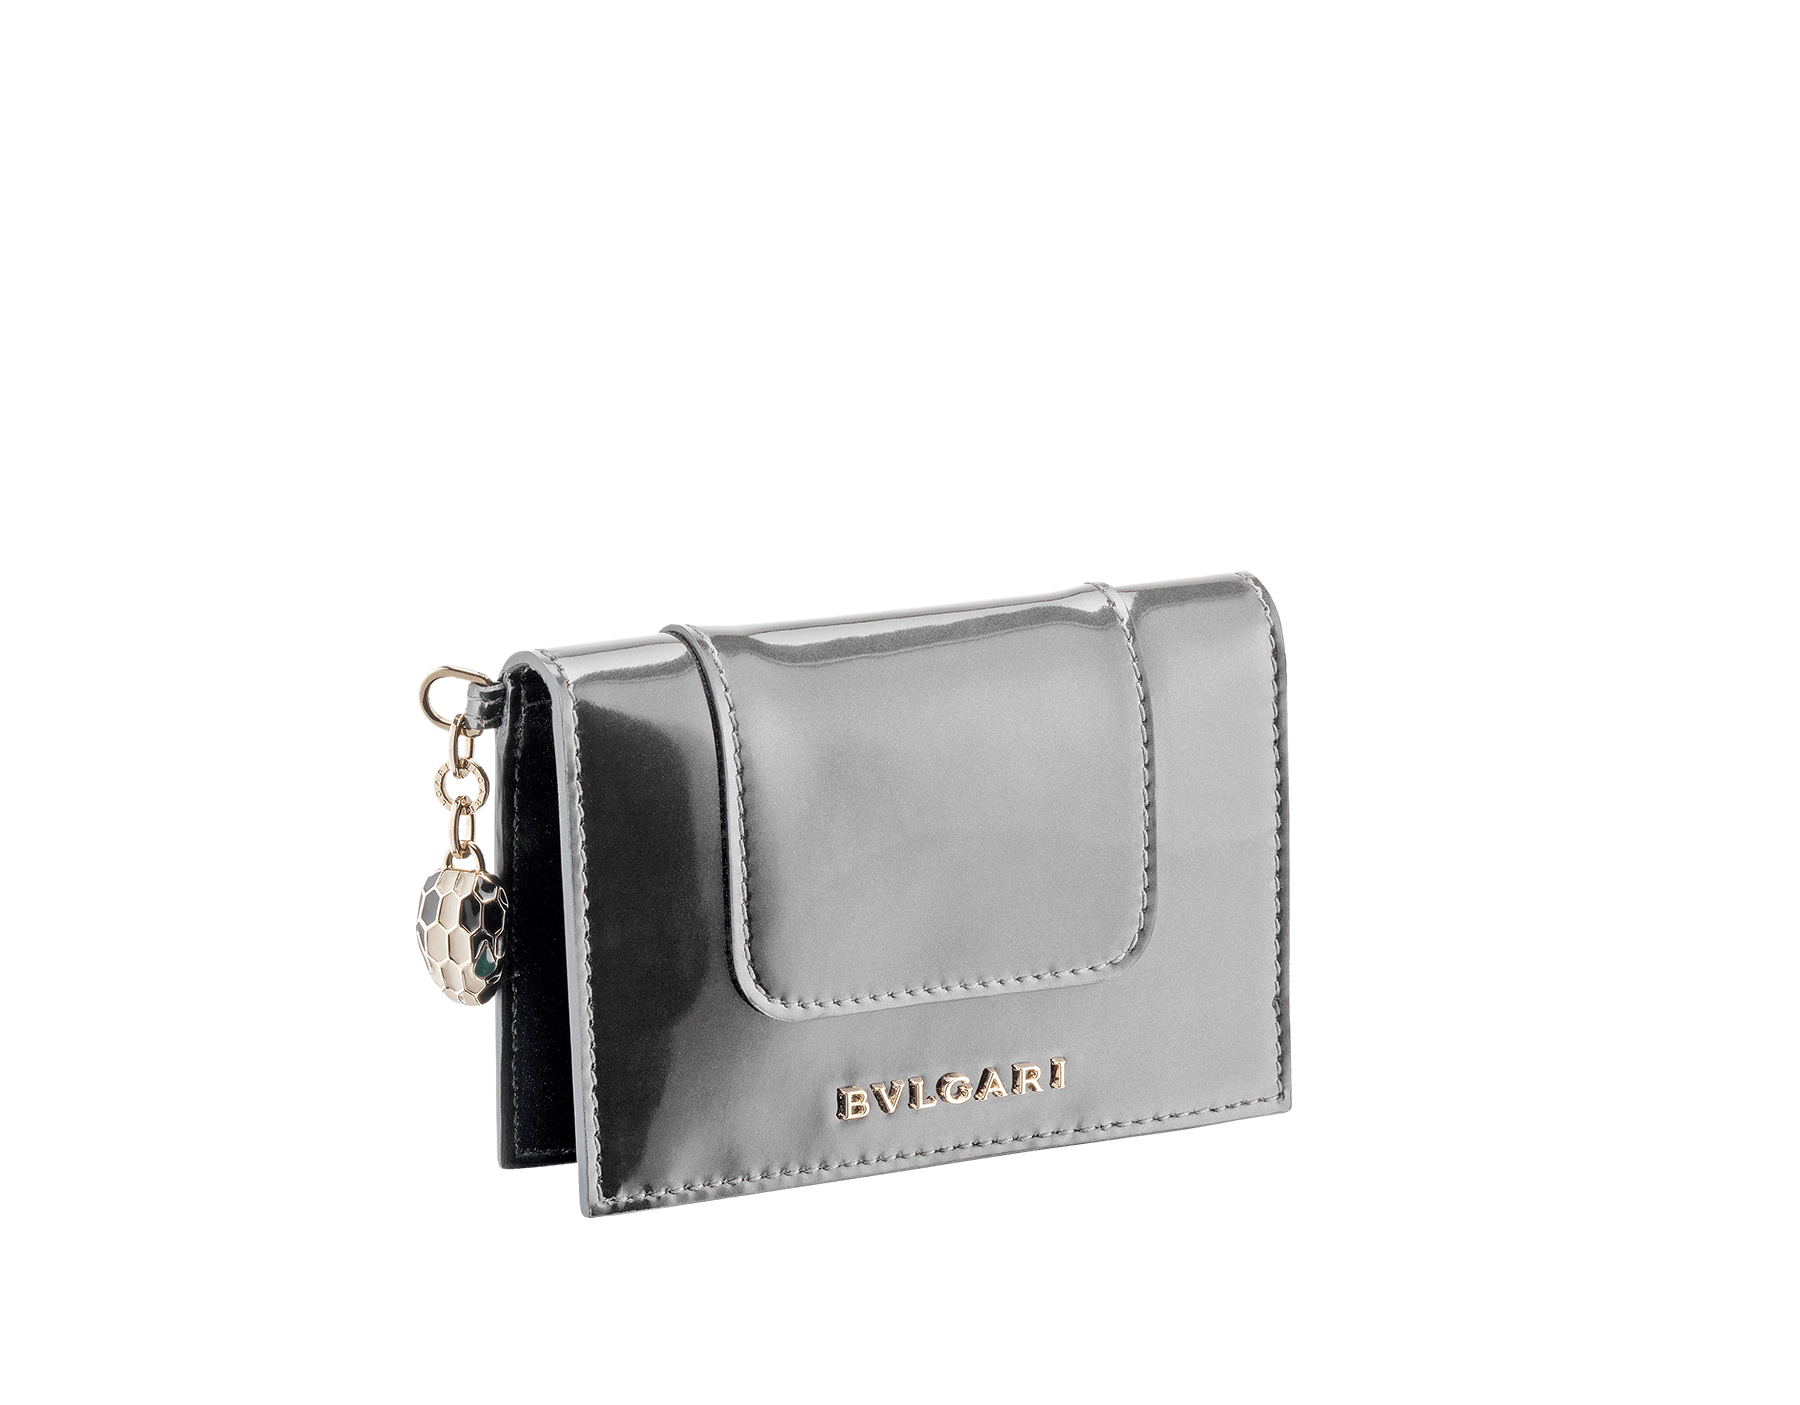 Folded credit card holder in frosted silver brushed metallic calf leather and black calf leather, with brass light gold plated hardware and stud closure. Serpenti head charm in black and white enamel with malachite enamel eyes. Six credit card slots and two compartments. Also available in other colours. 8 x 11,5 cm. - 3.1 x 4.5 282034 image 1